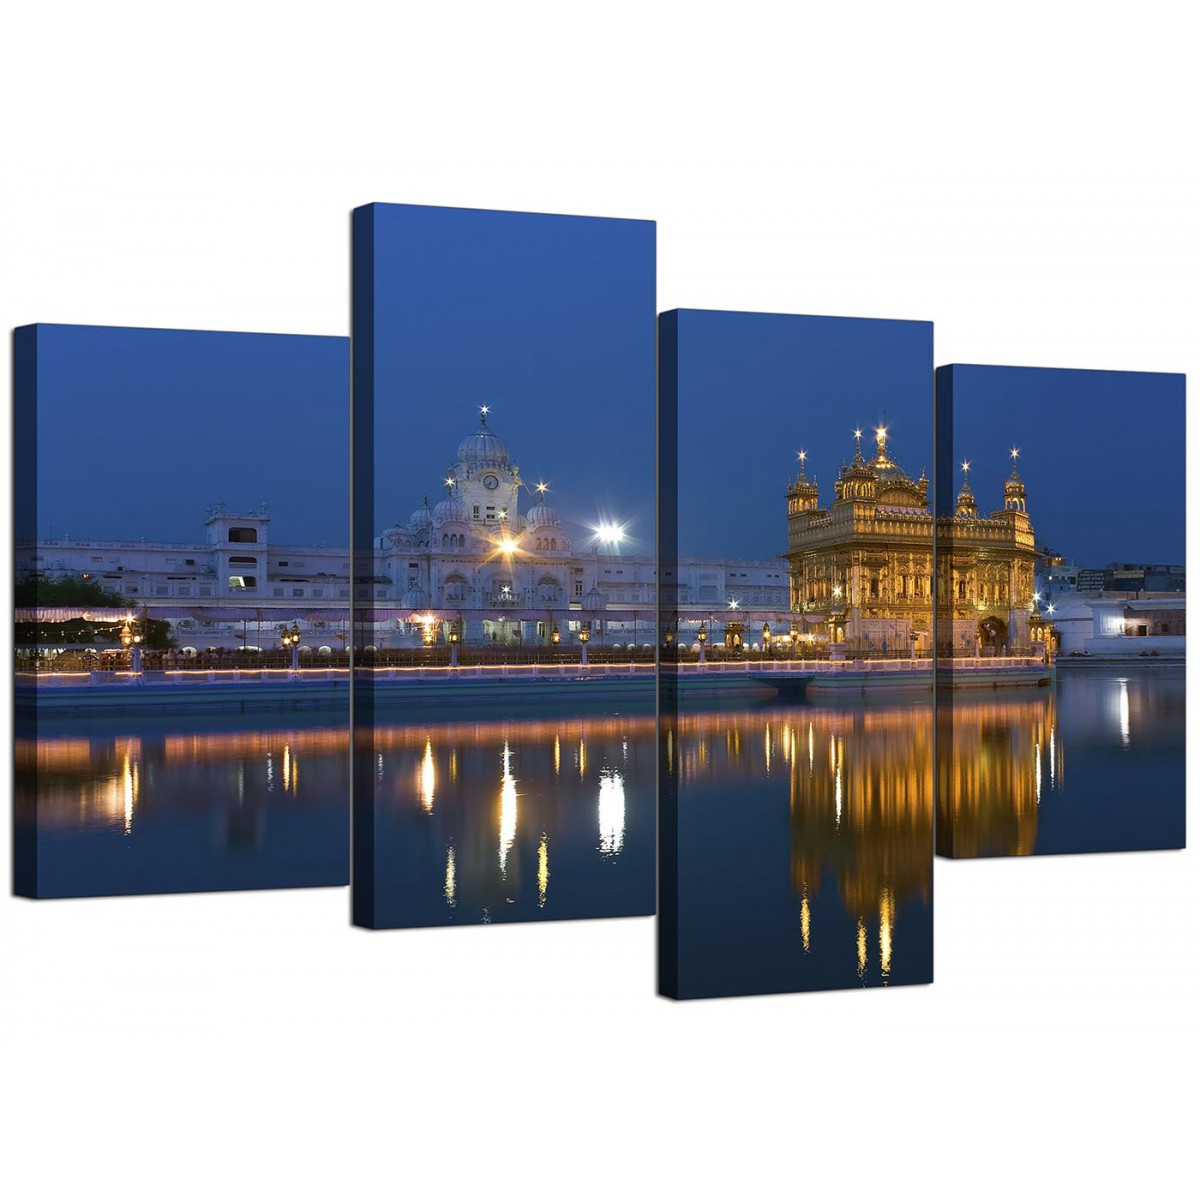 Sikh Canvas Wall Art Of Golden Temple Amritsar For A Bedroom 4 Part